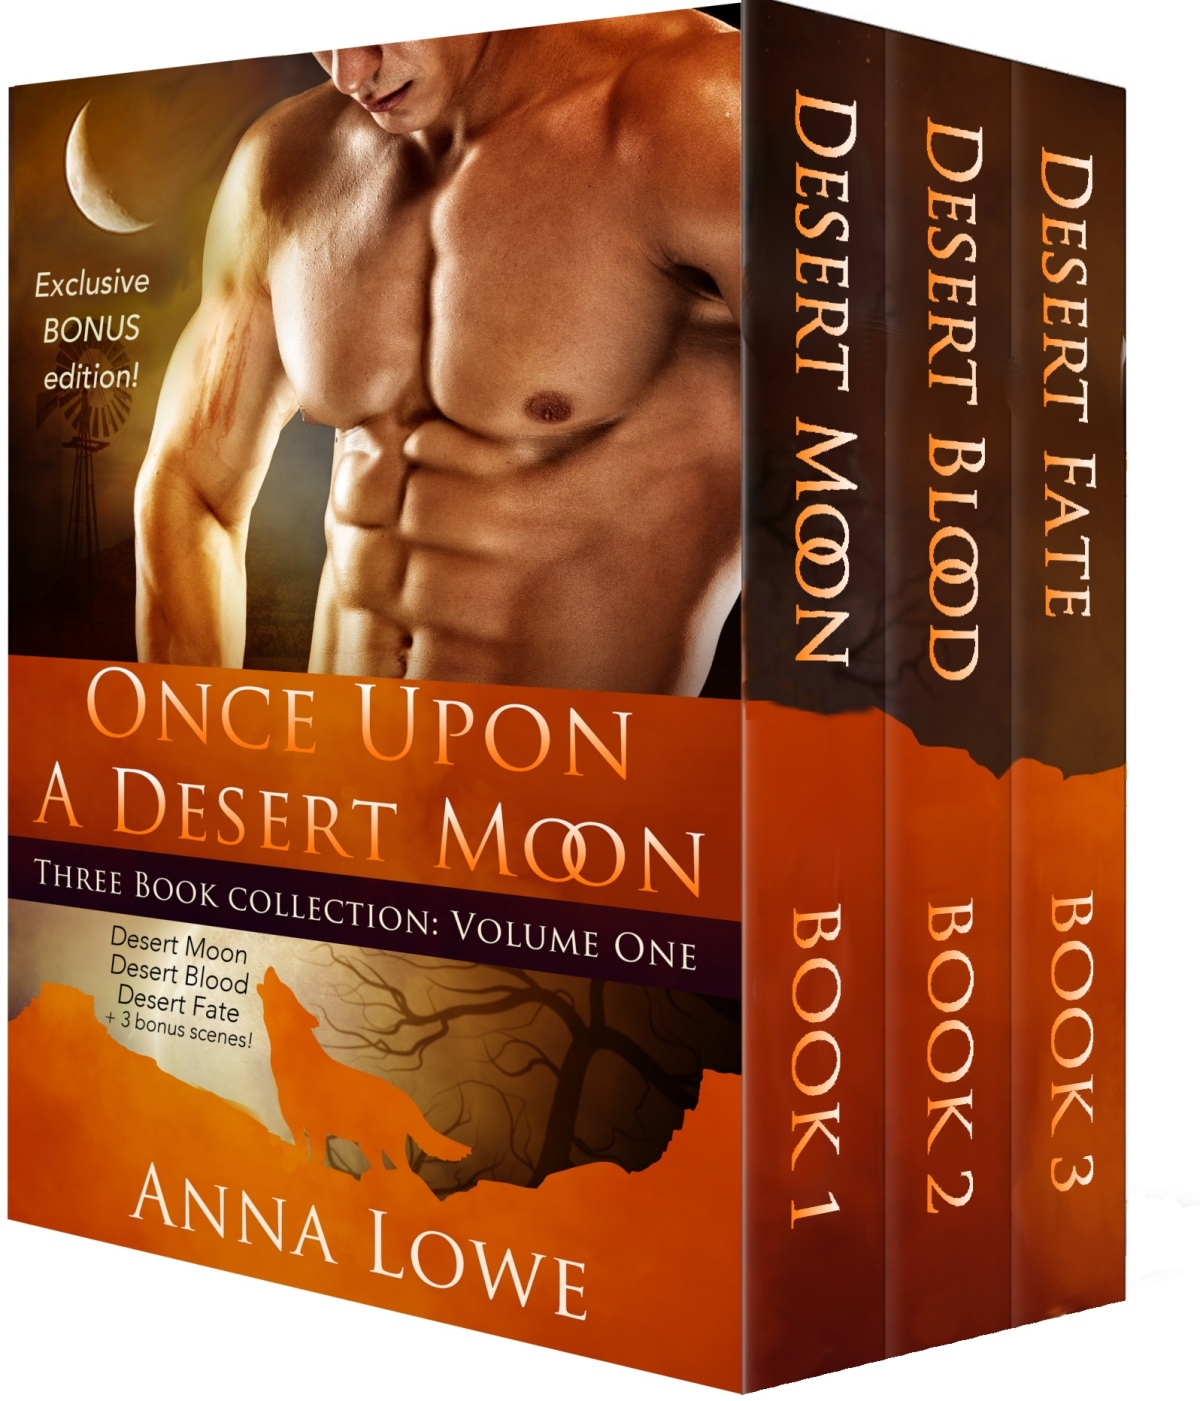 Once upon a Desert Moon (Vol. 1)